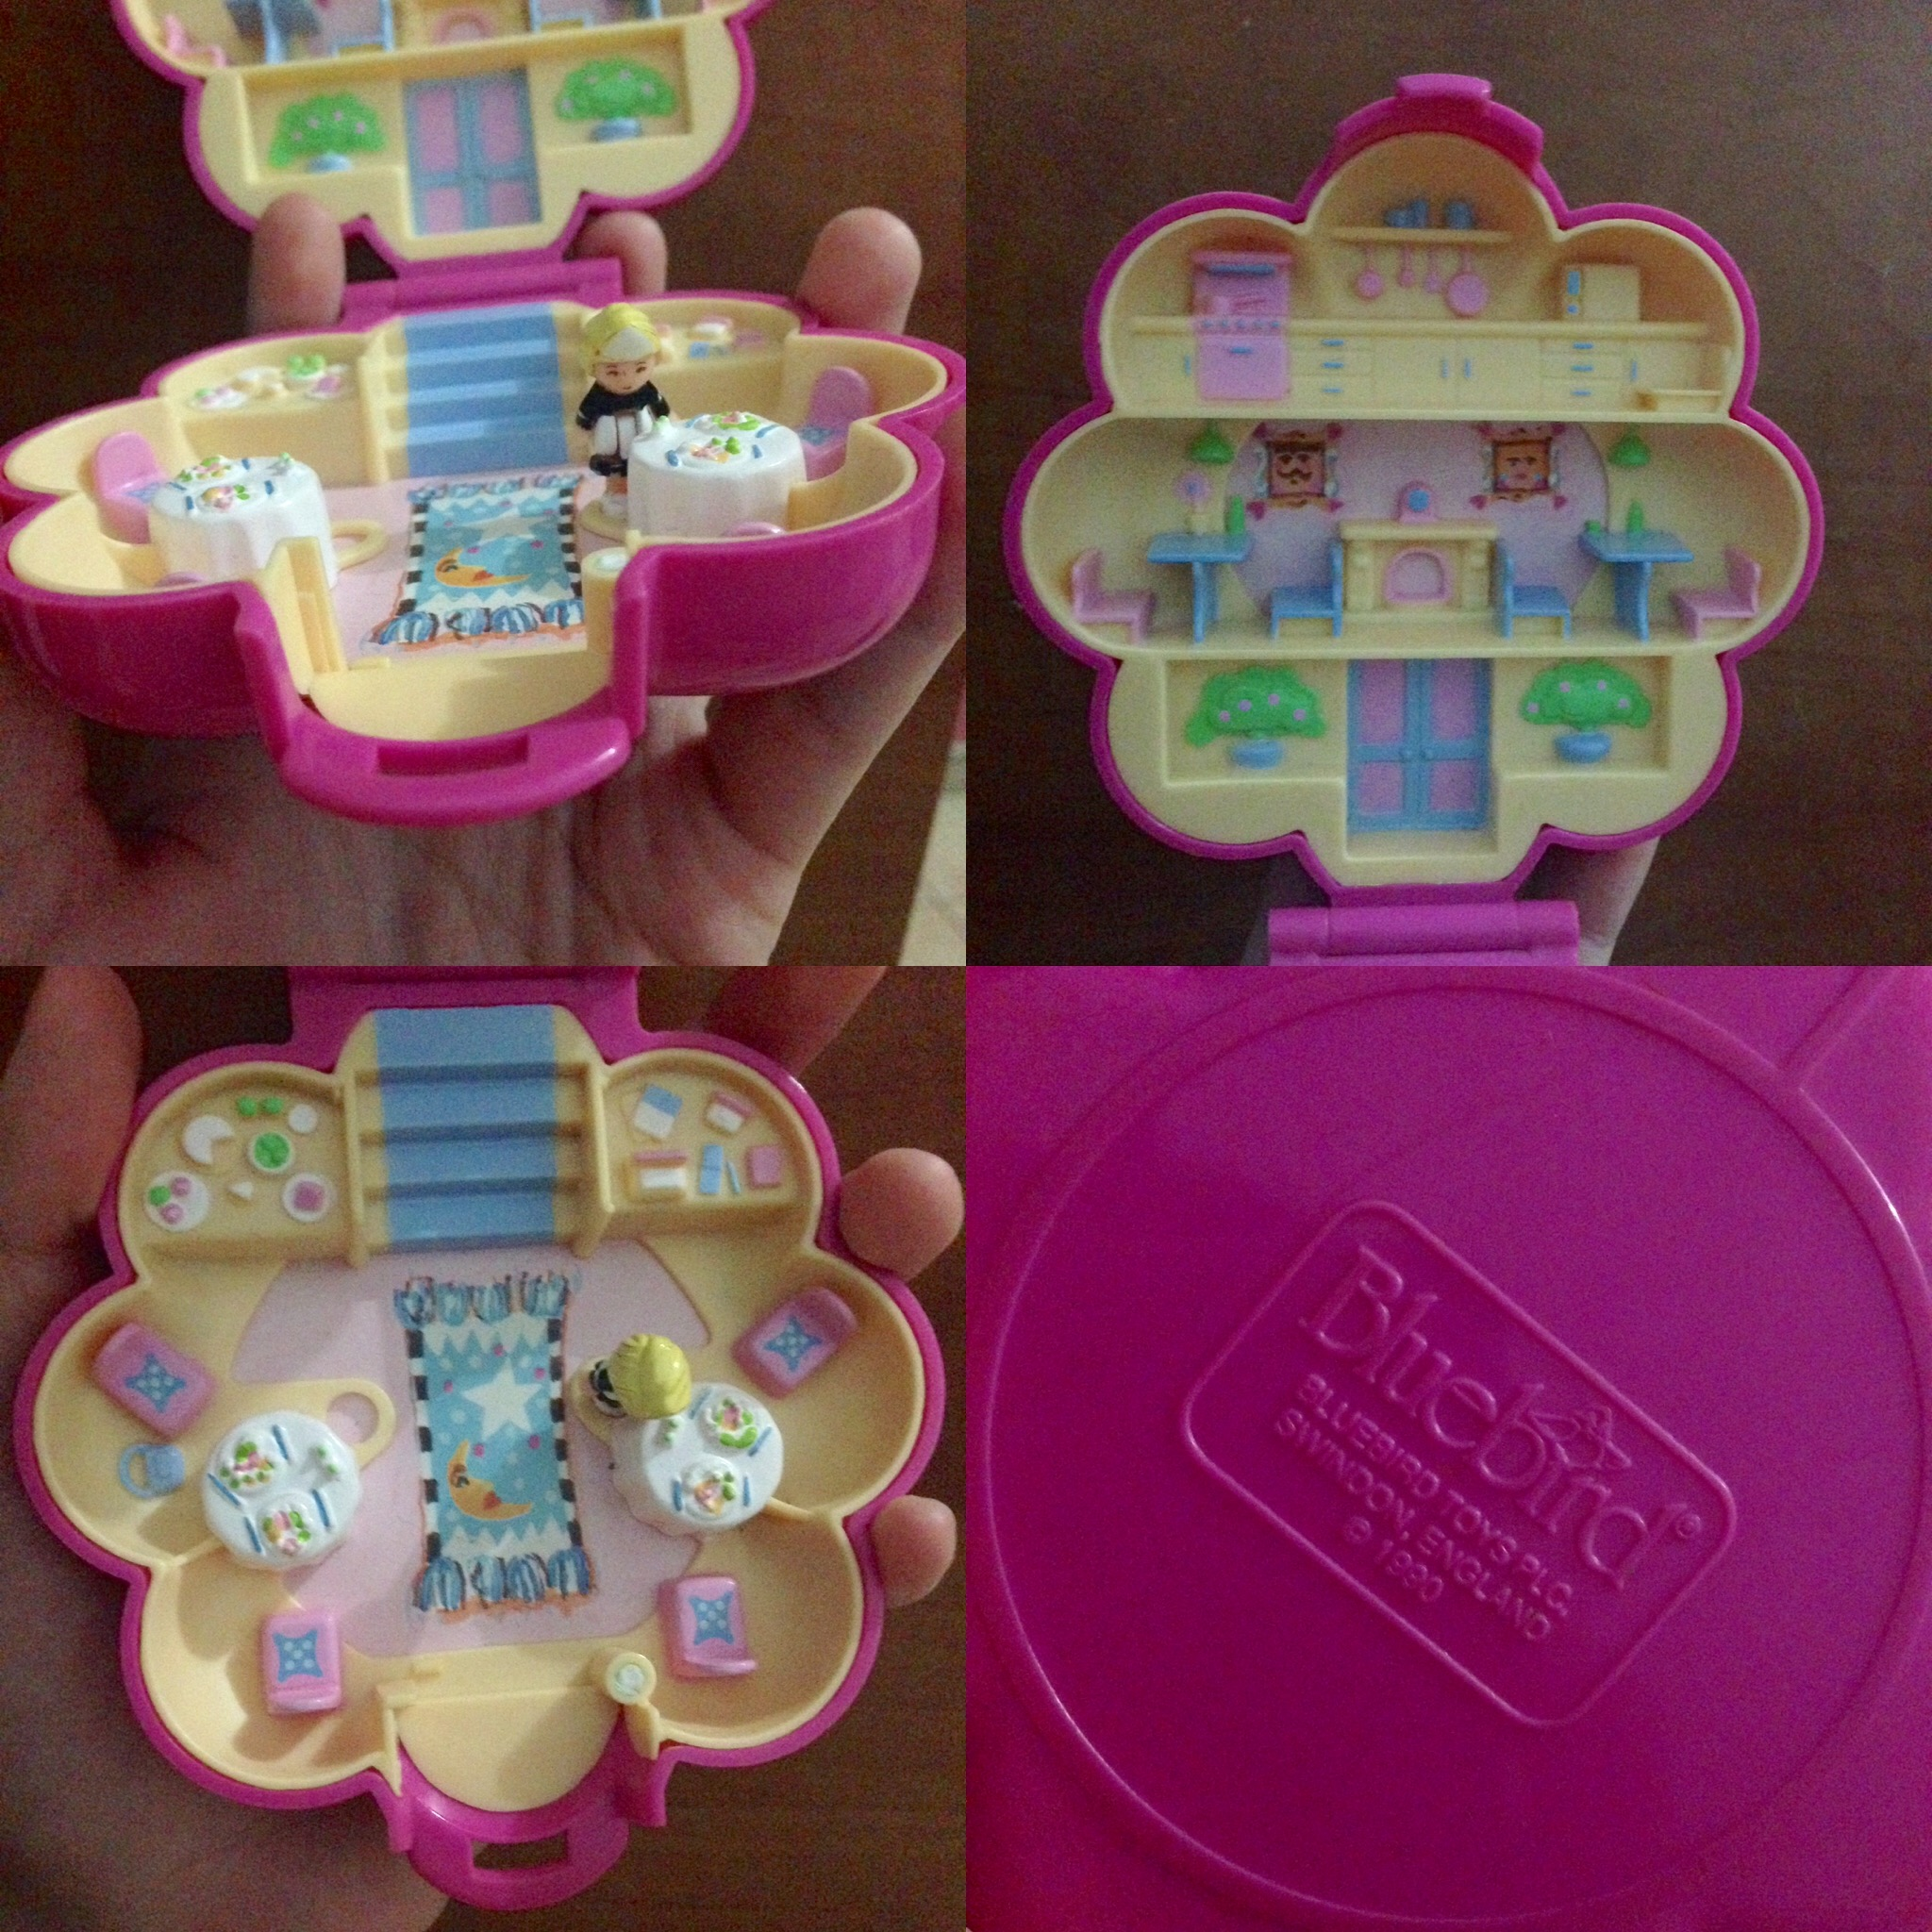 harga JUAL POLLY POCKET 1990 - Mr Fry's Tokopedia.com